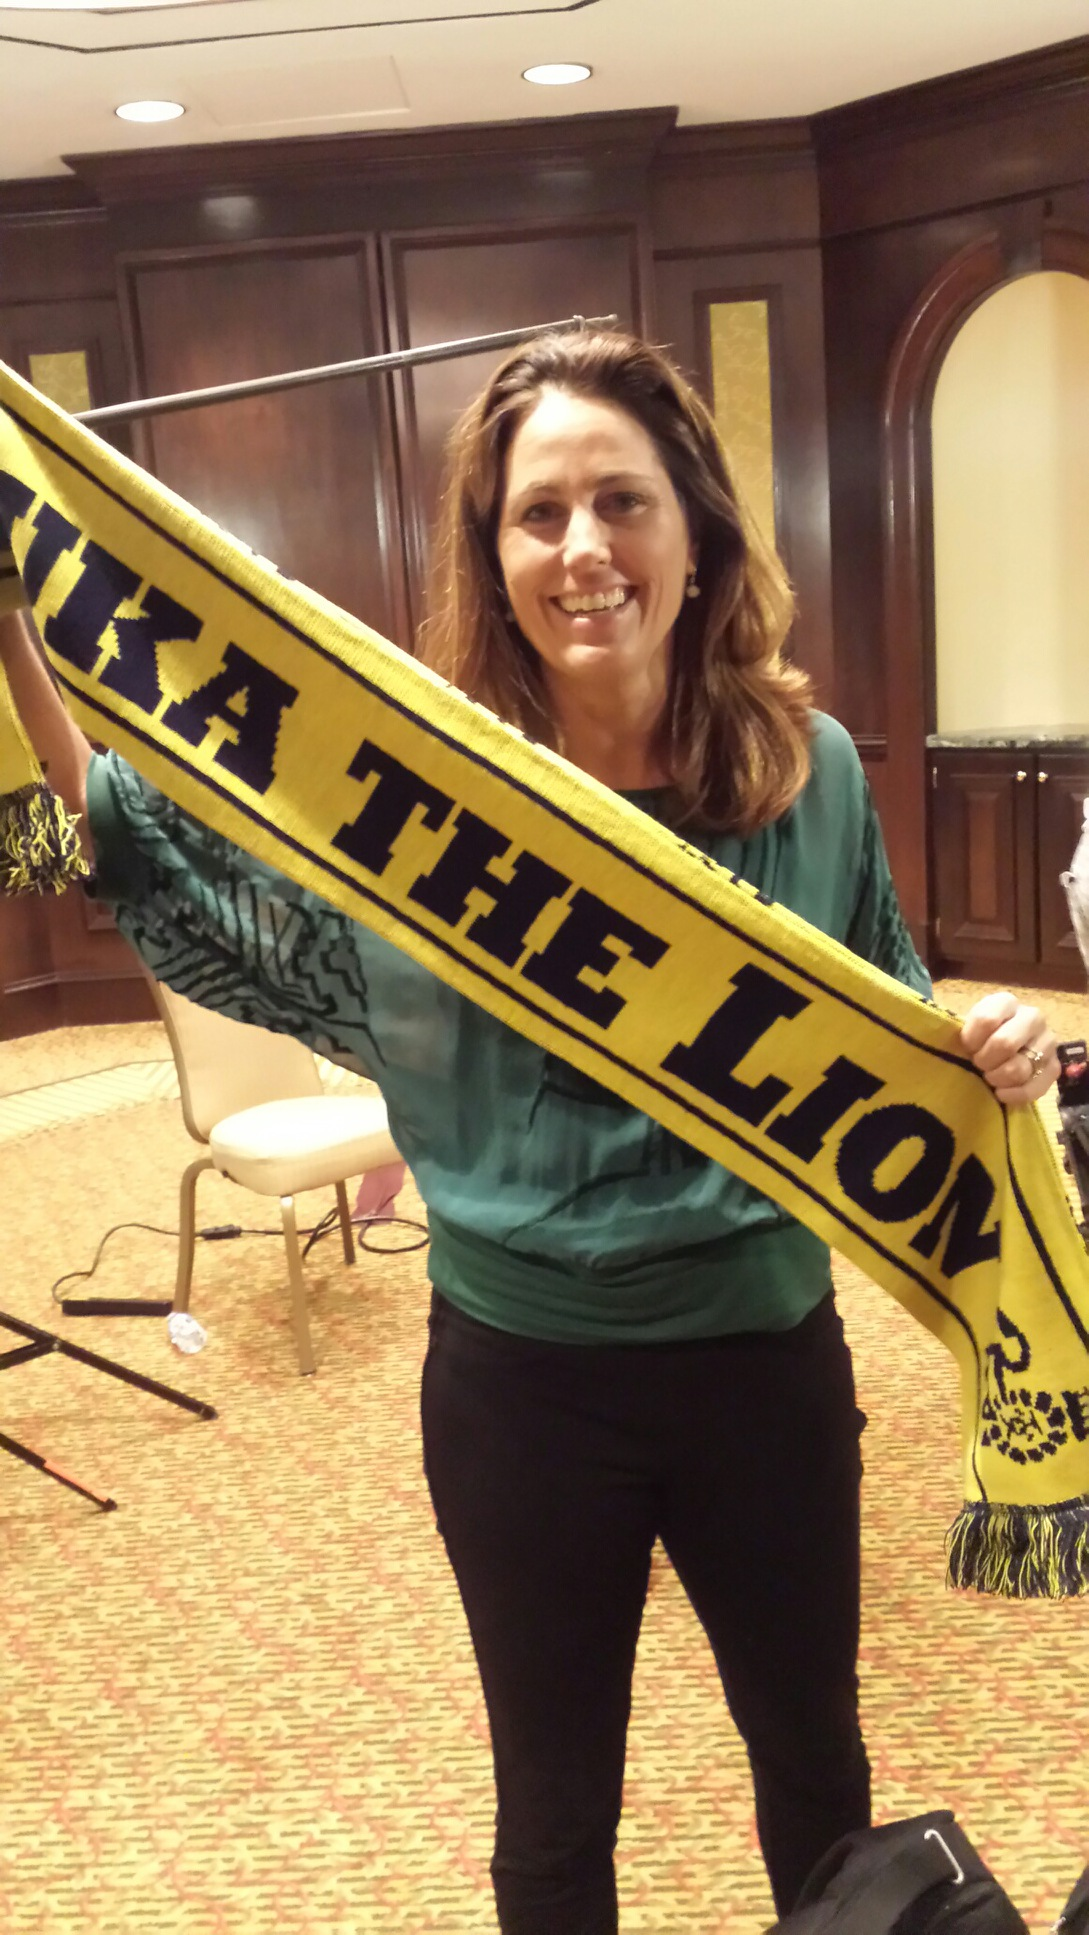 U.S. soccer legend, Julie Foudy, the inaguaral #LukaTheLIon #ScarfChallenge supporter